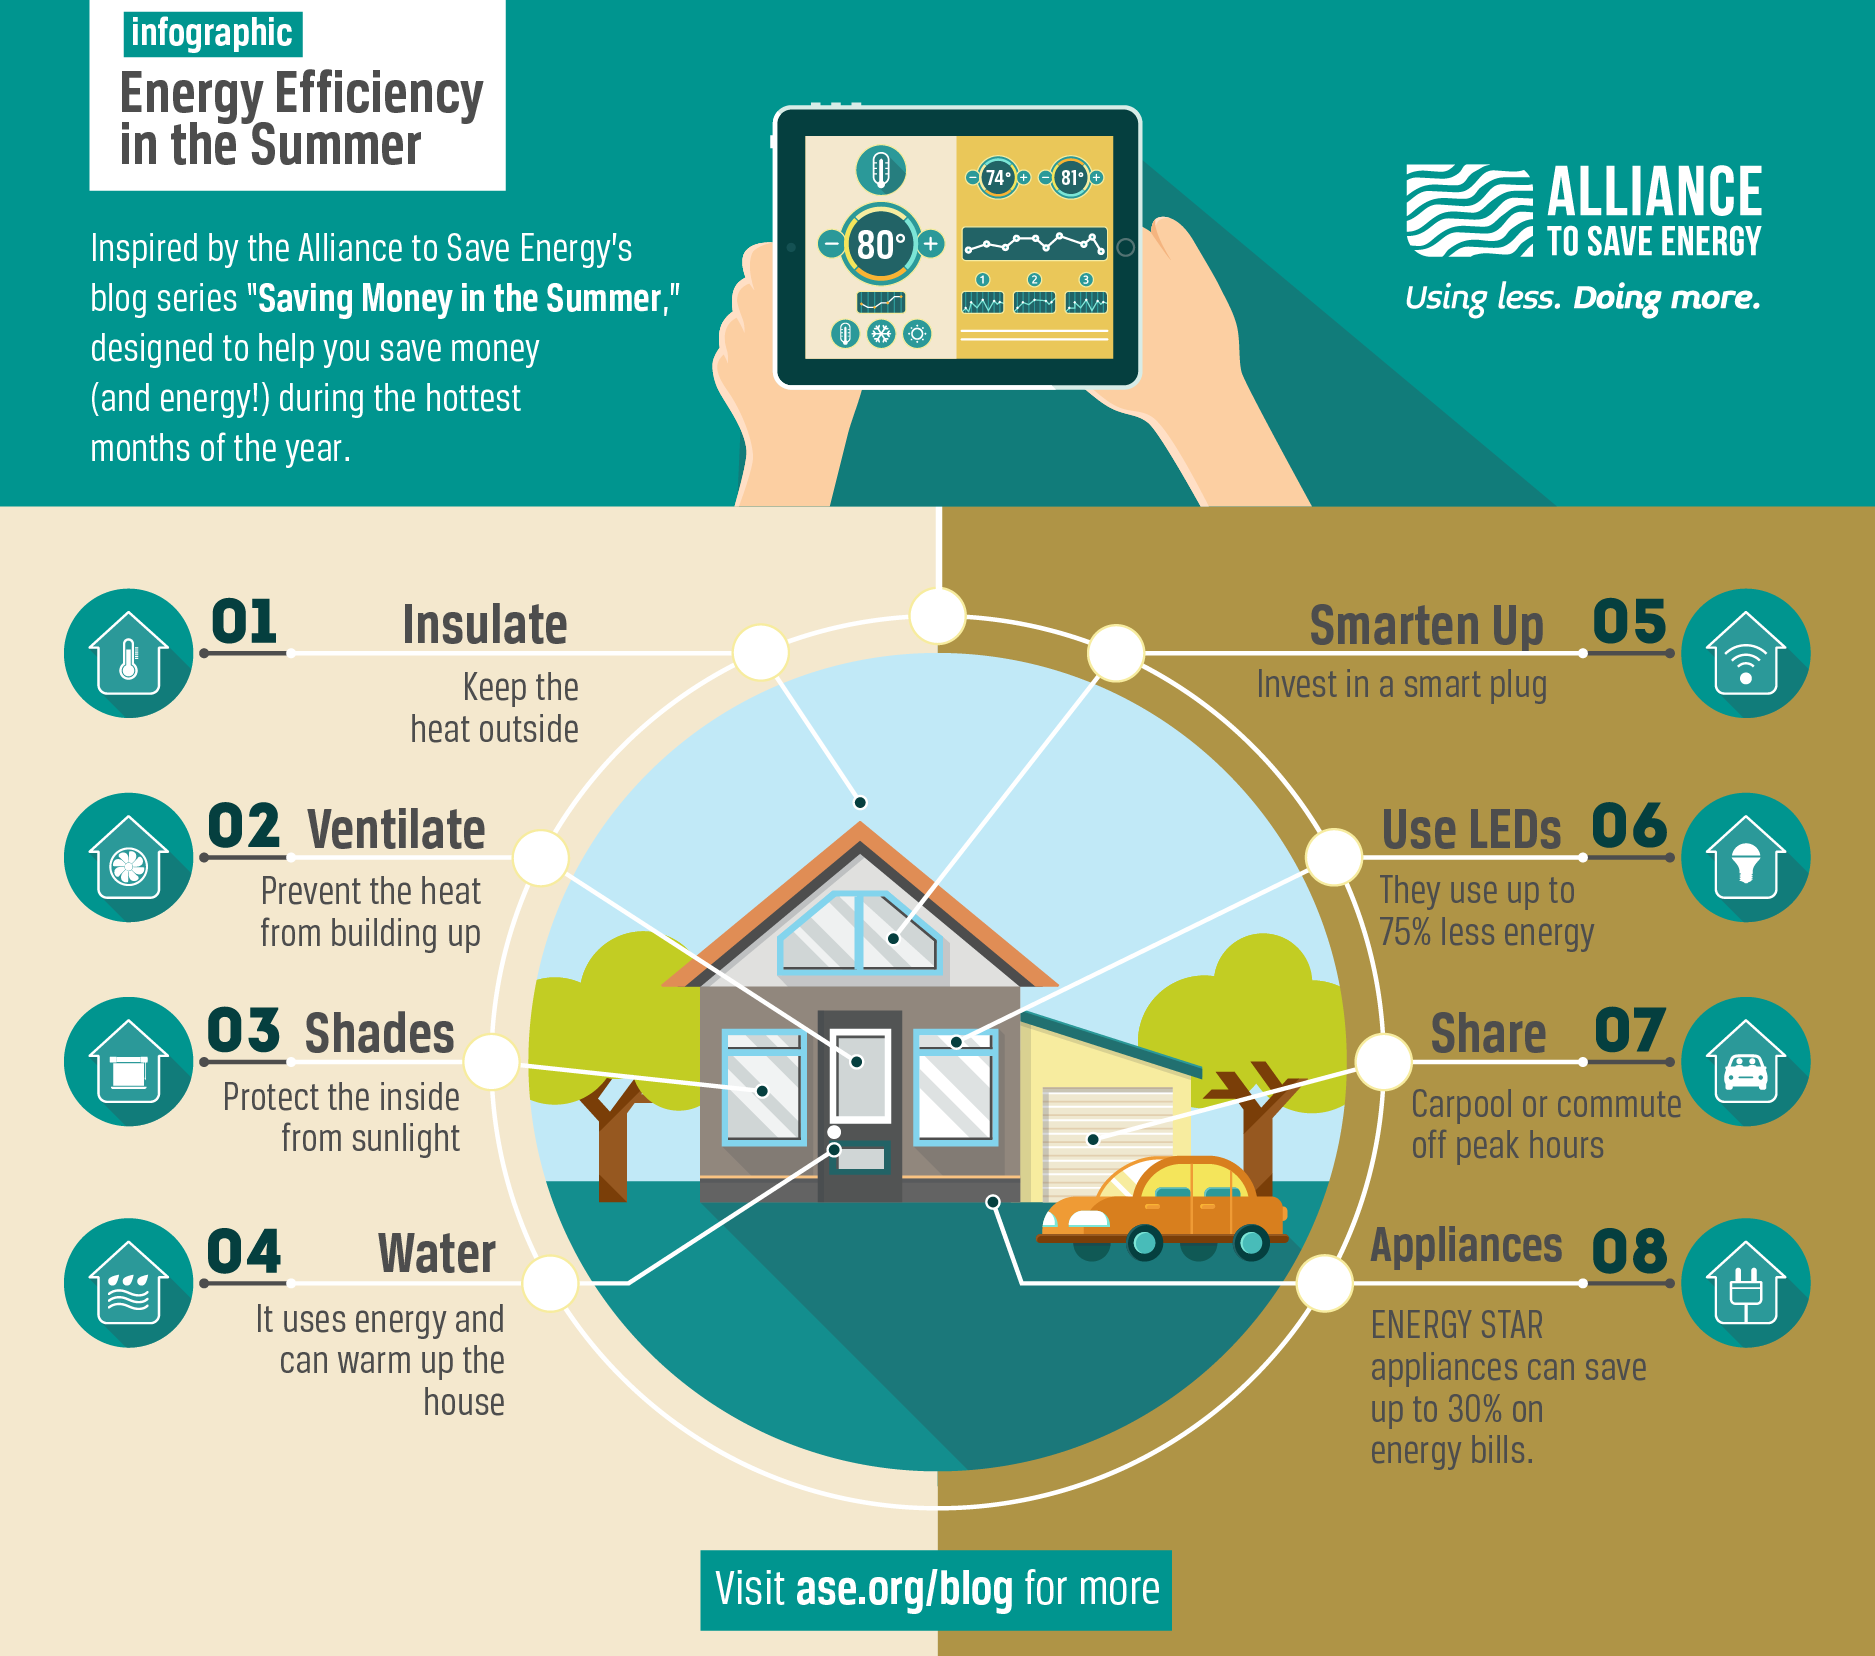 Infographic Energy Efficiency In The Summer Alliance To Save